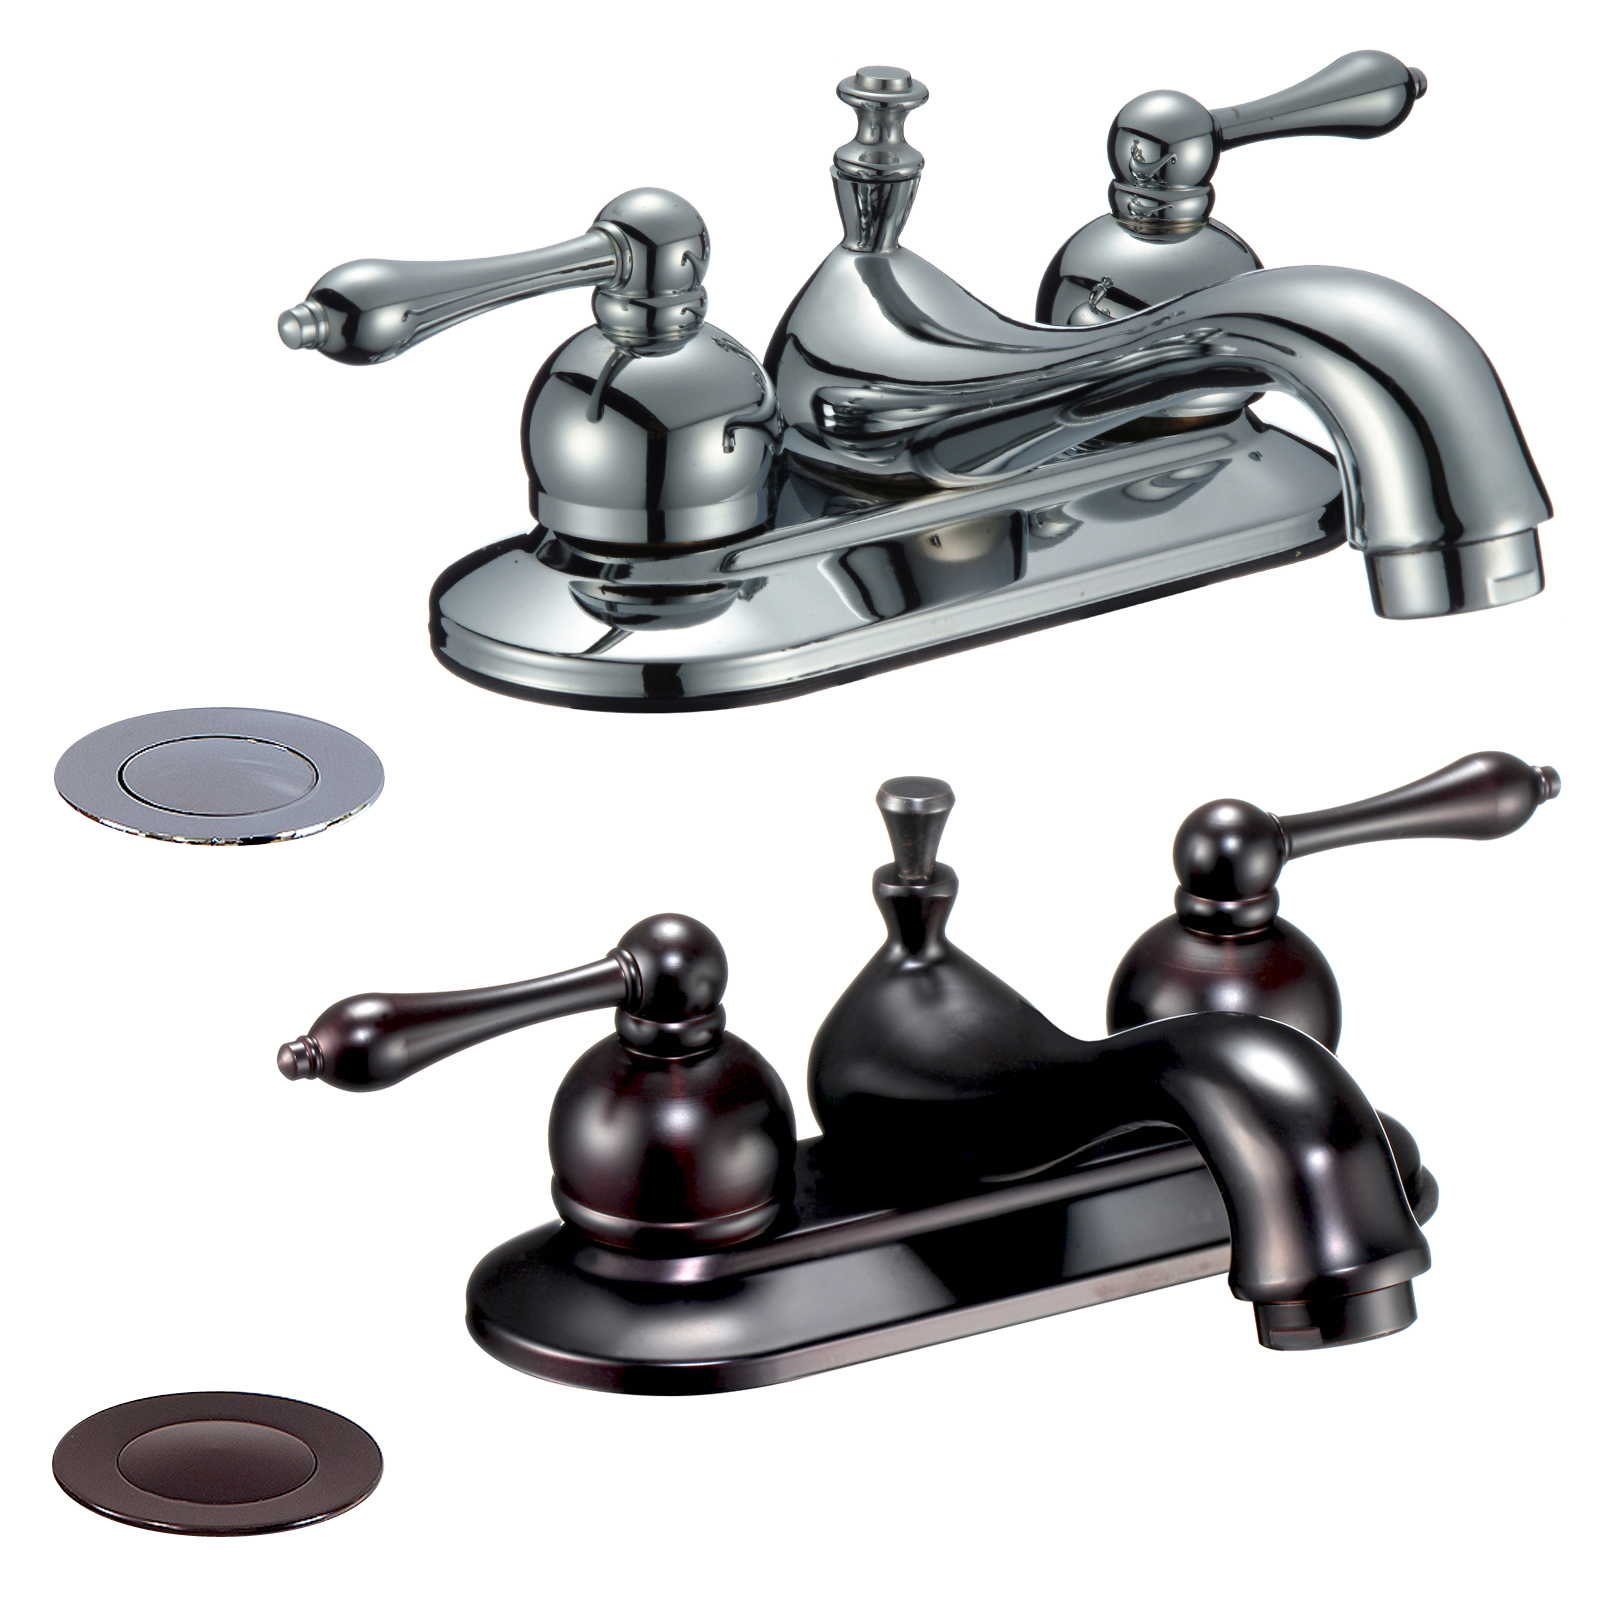 FREUER Per Sempre Collection: Centerset Bathroom Sink Faucet - Multiple Finishes Available